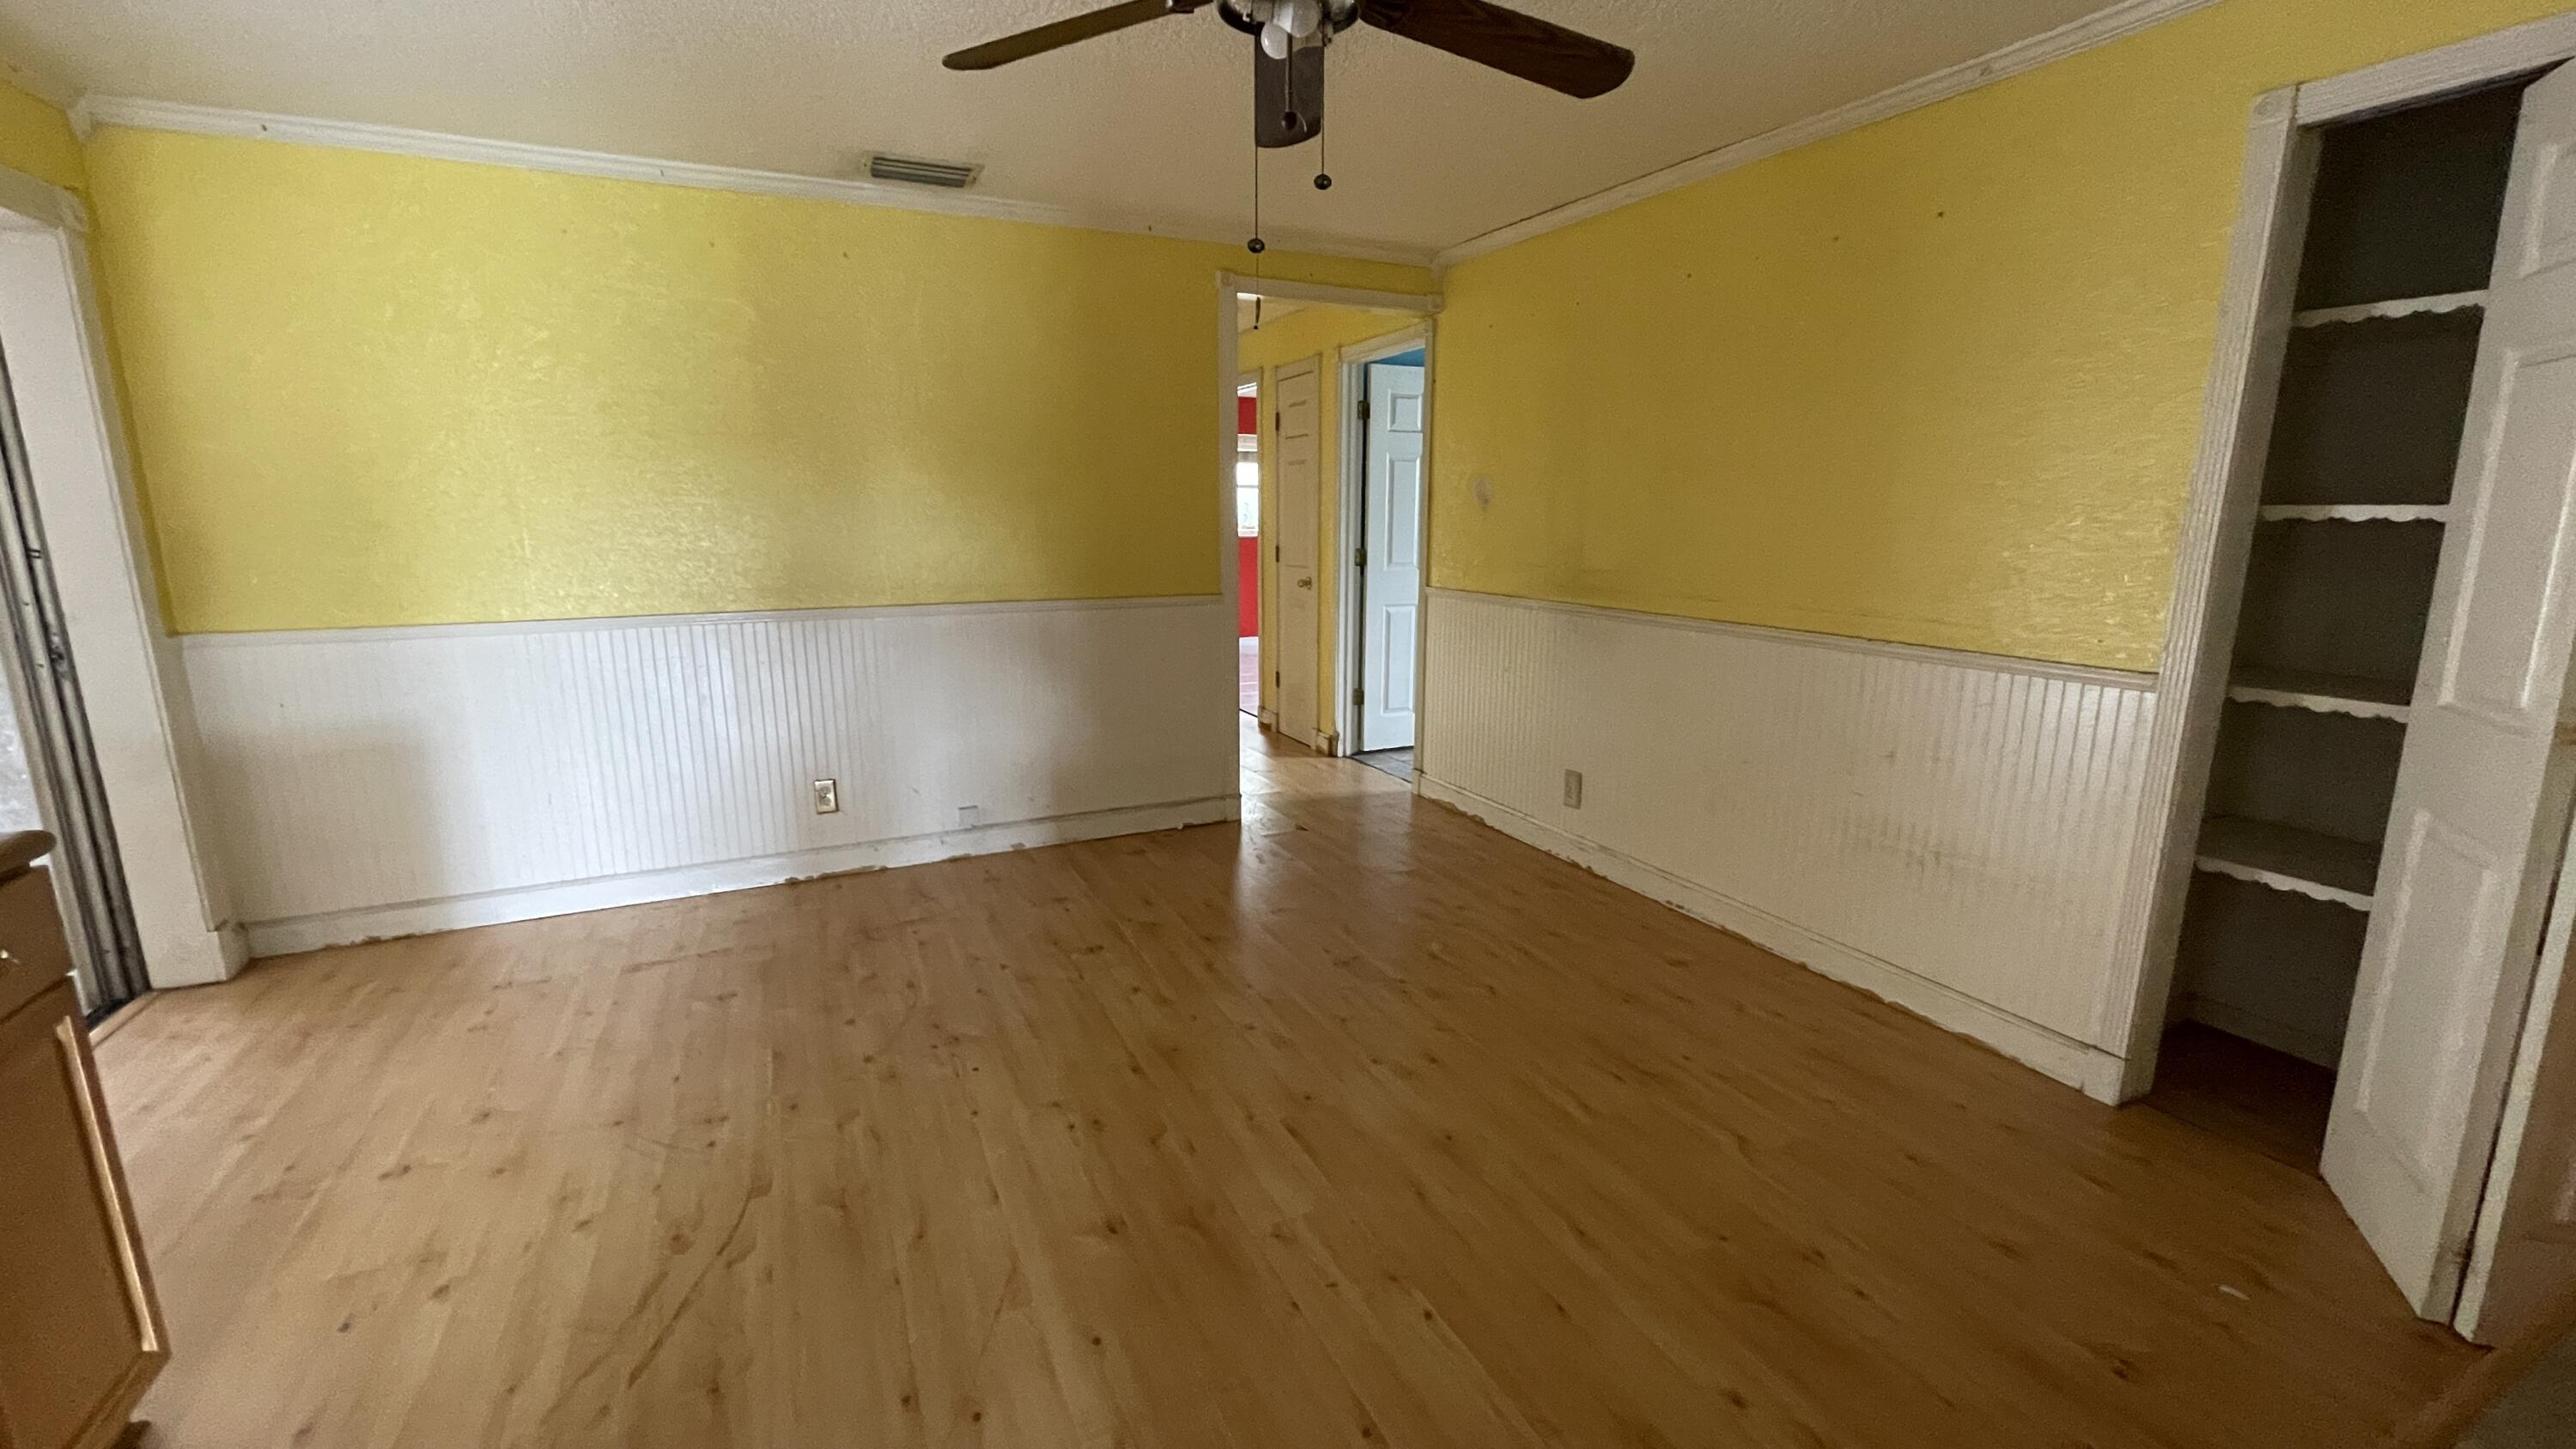 Image 3 of 18 For 6854 1st Street Nw